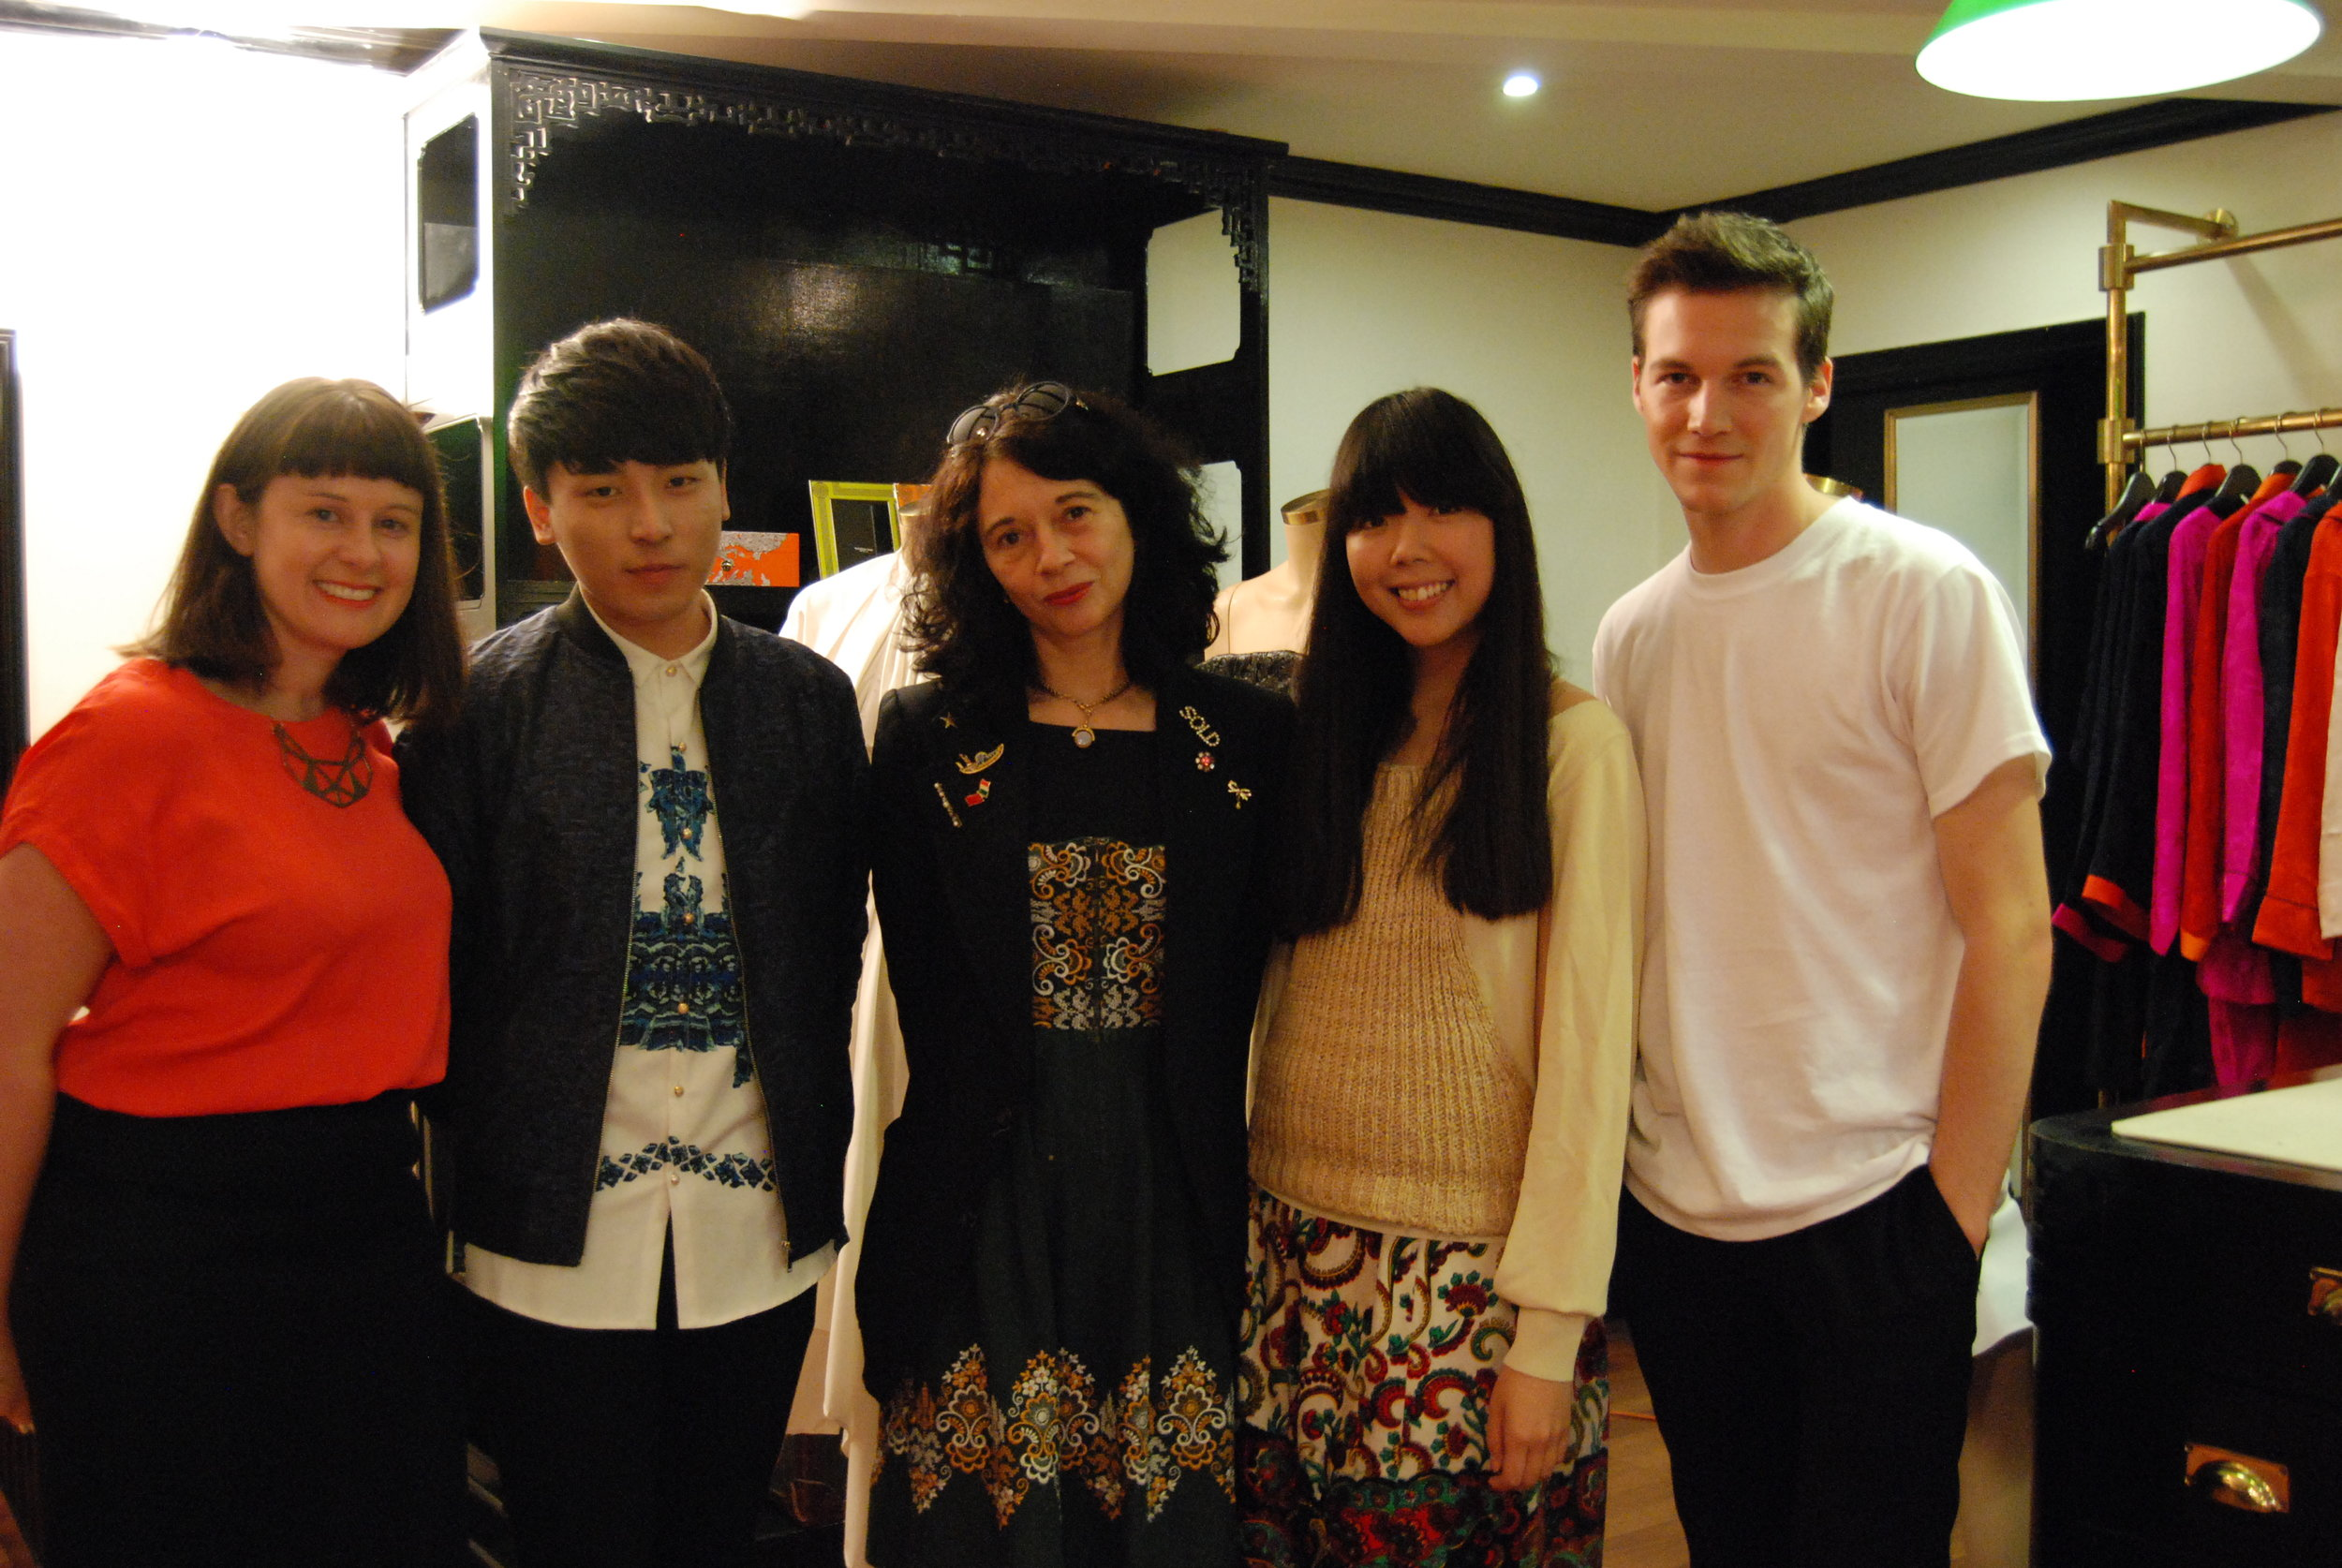 Orsola (centre) with mentees Angus Tsui (second from left) and Kévin Germanier (far right)